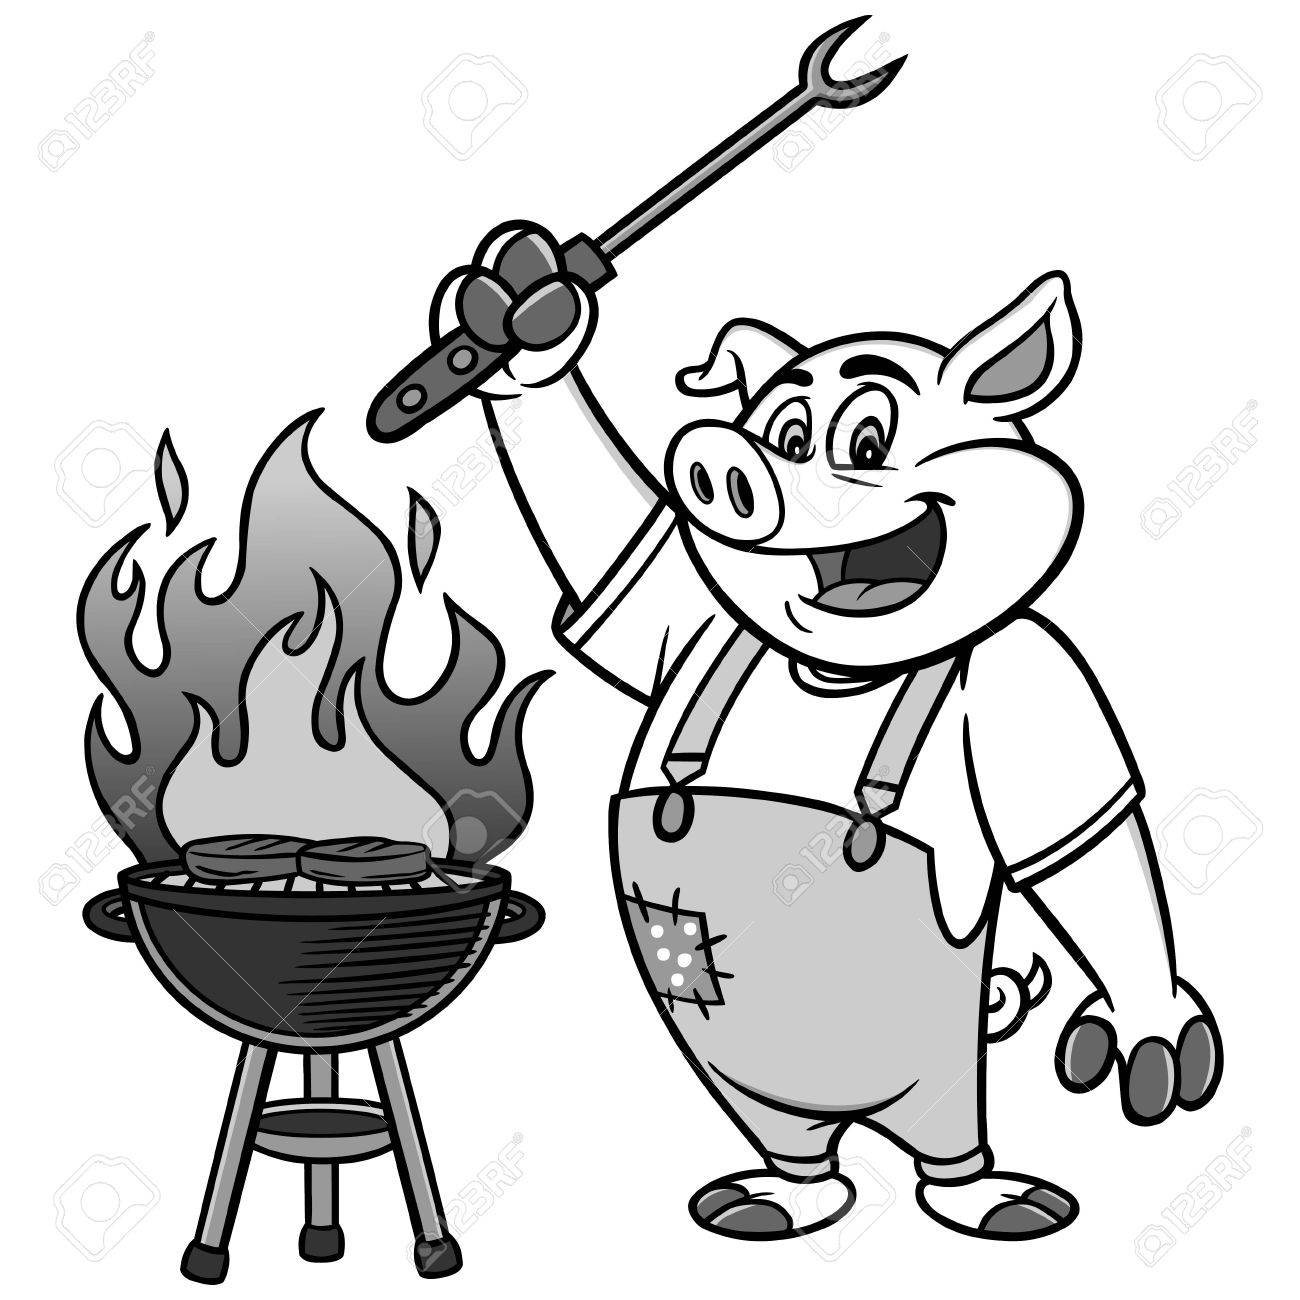 hight resolution of bbq grilling pig illustration stock vector 84578986